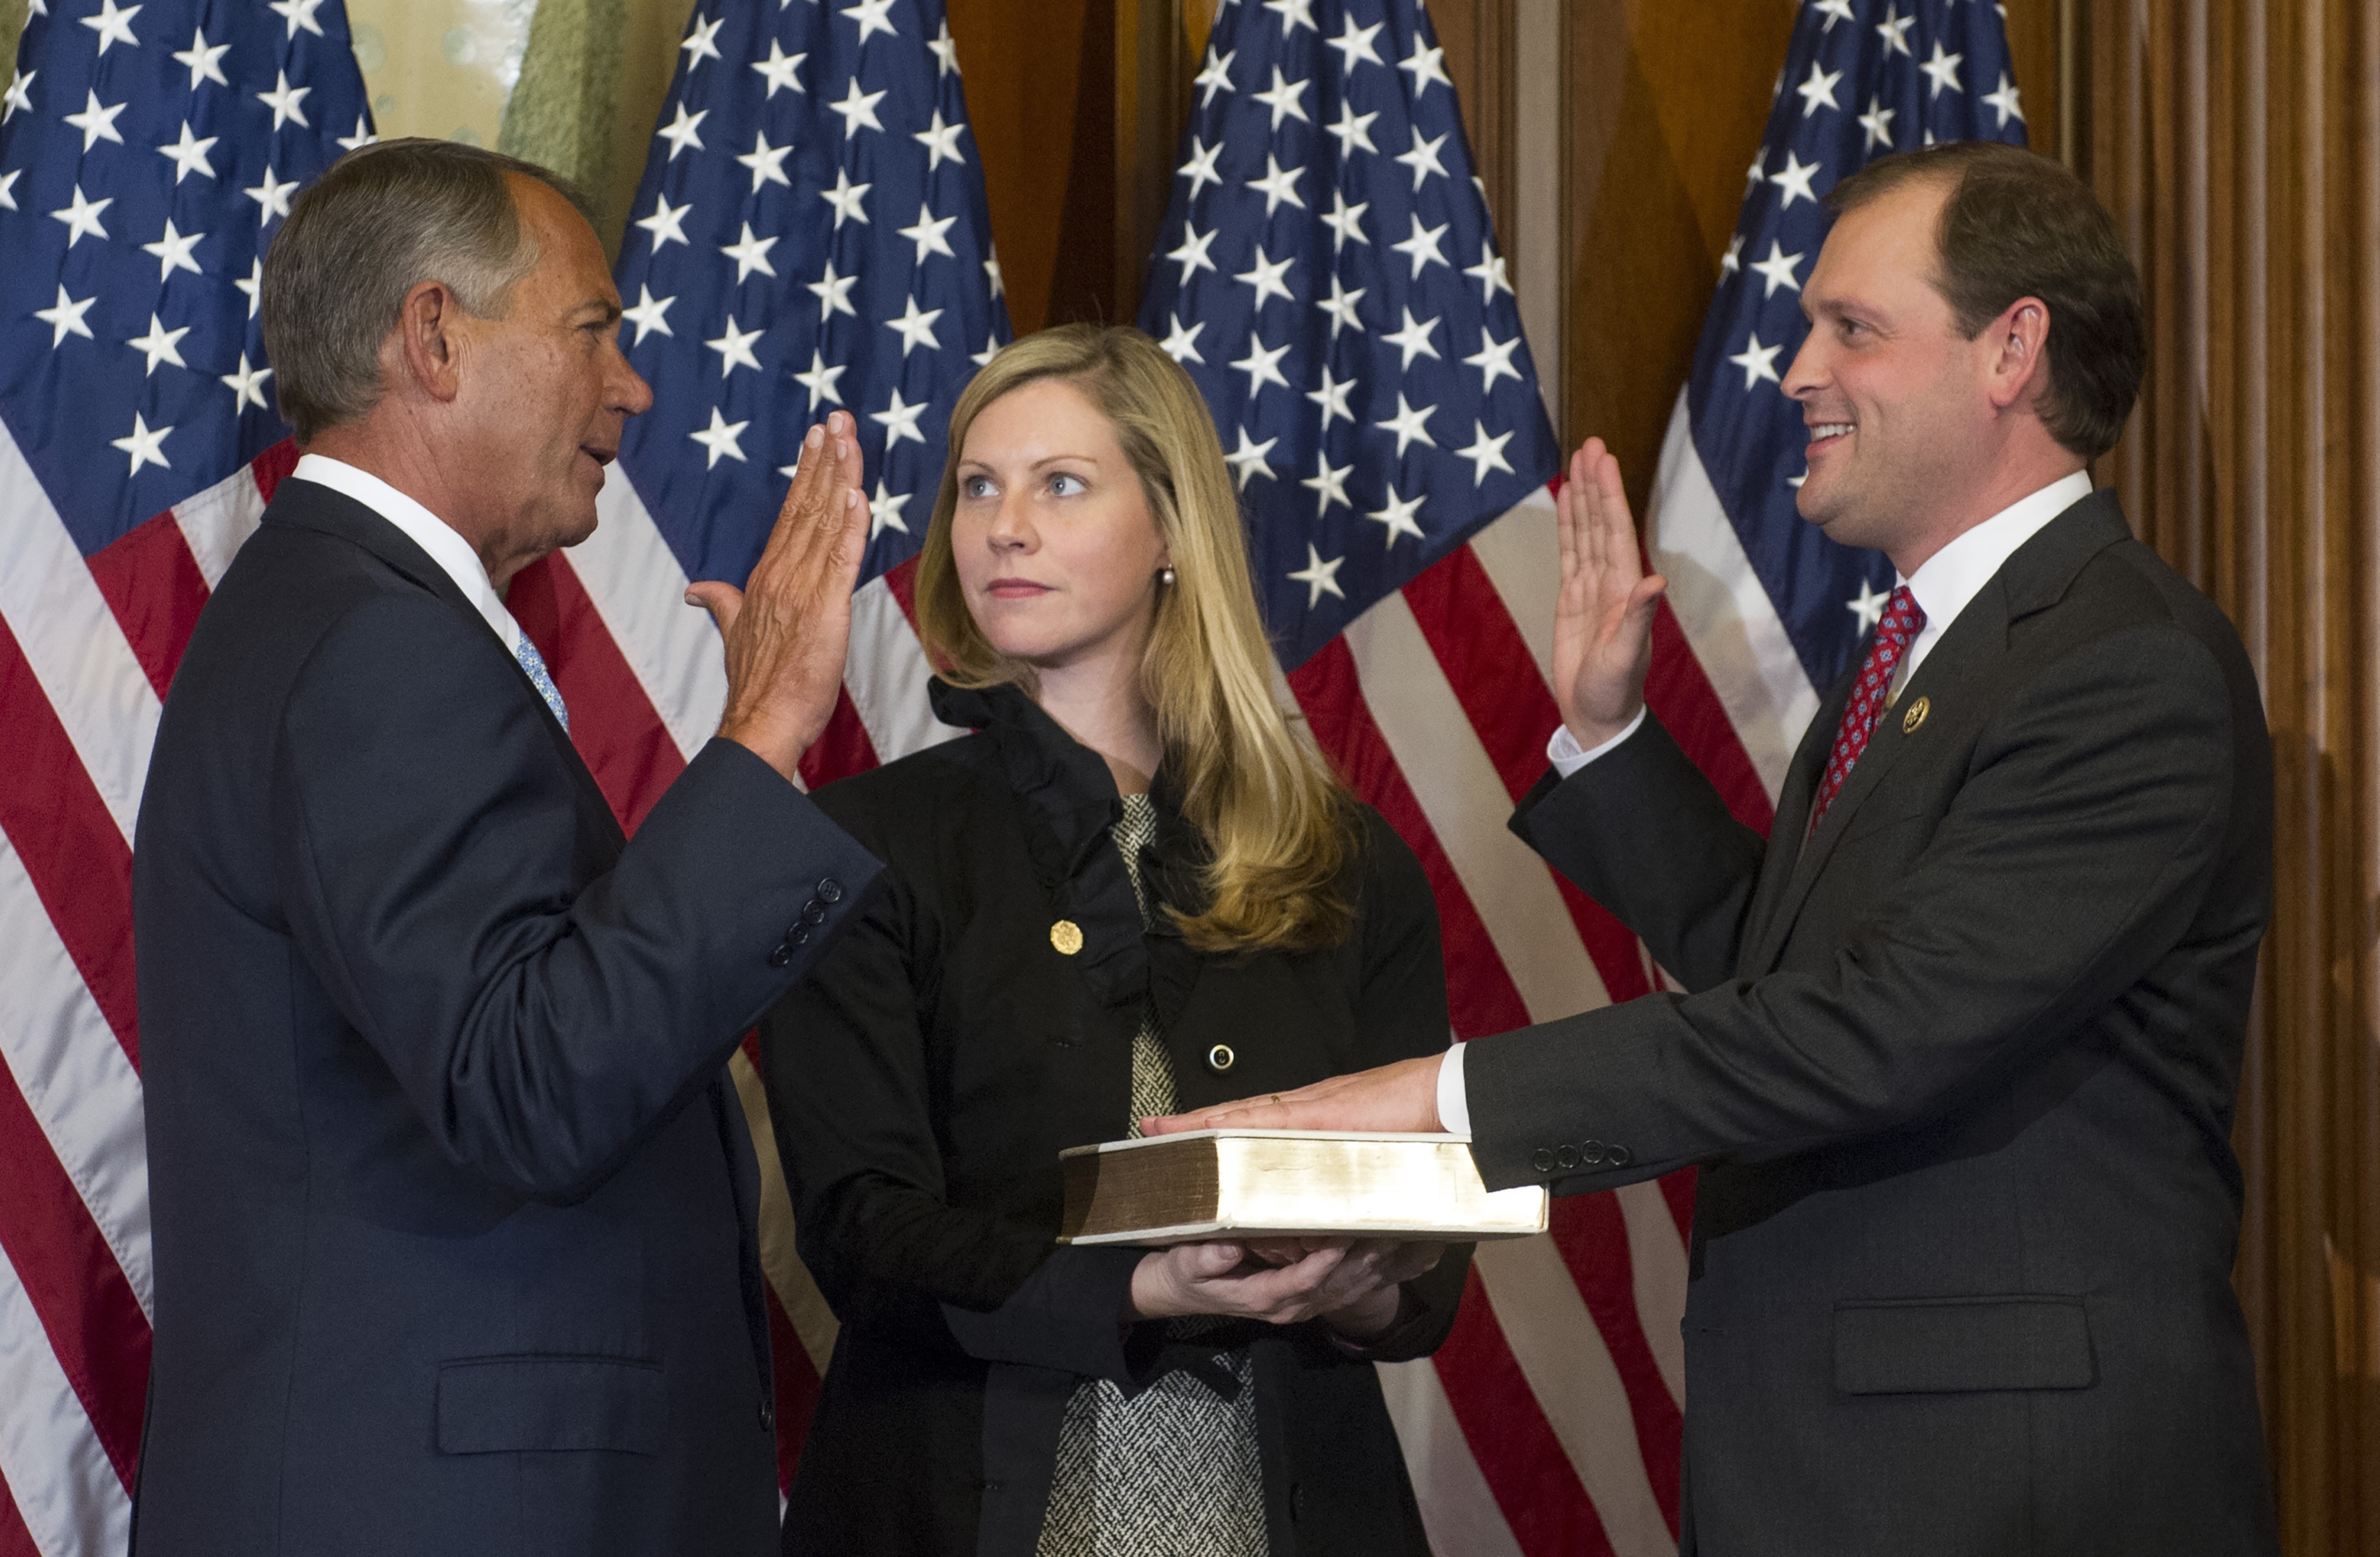 In this Jan. 6, 2015, file photo, then-House Speaker John Boehner of Ohio, left, administers a ceremonial re-enactment of the House oath-of-office to Rep. Andy Barr, R-Ky., accompanied by his wife Eleanor Carol Leavell on Capitol Hill